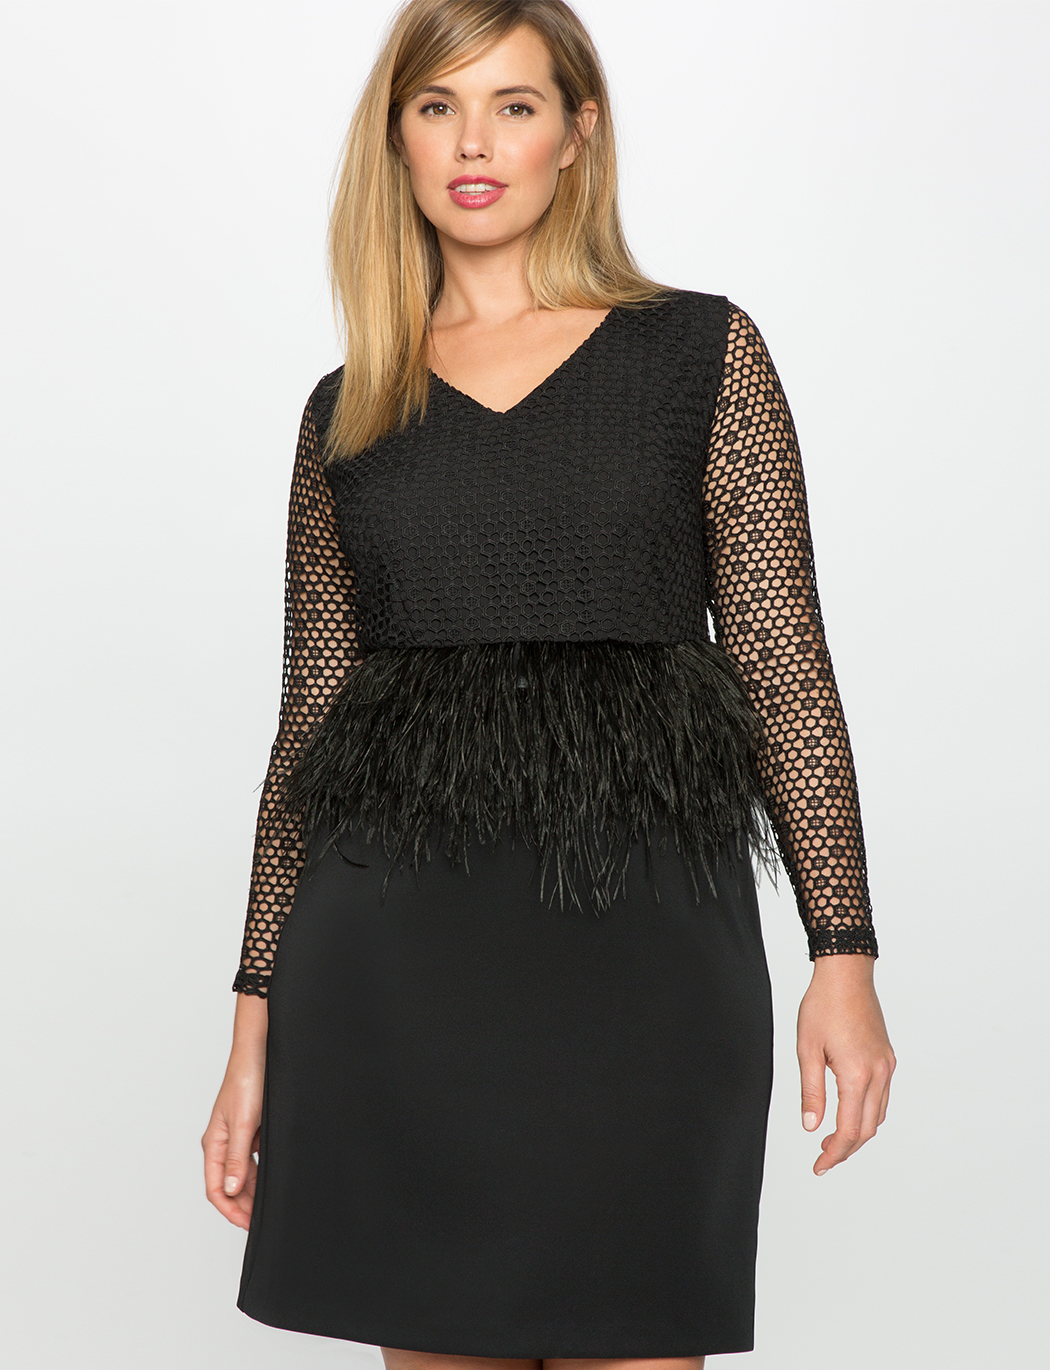 Studio Feather and Lace Peplum Dress | Women\'s Plus Size Dresses | ELOQUII